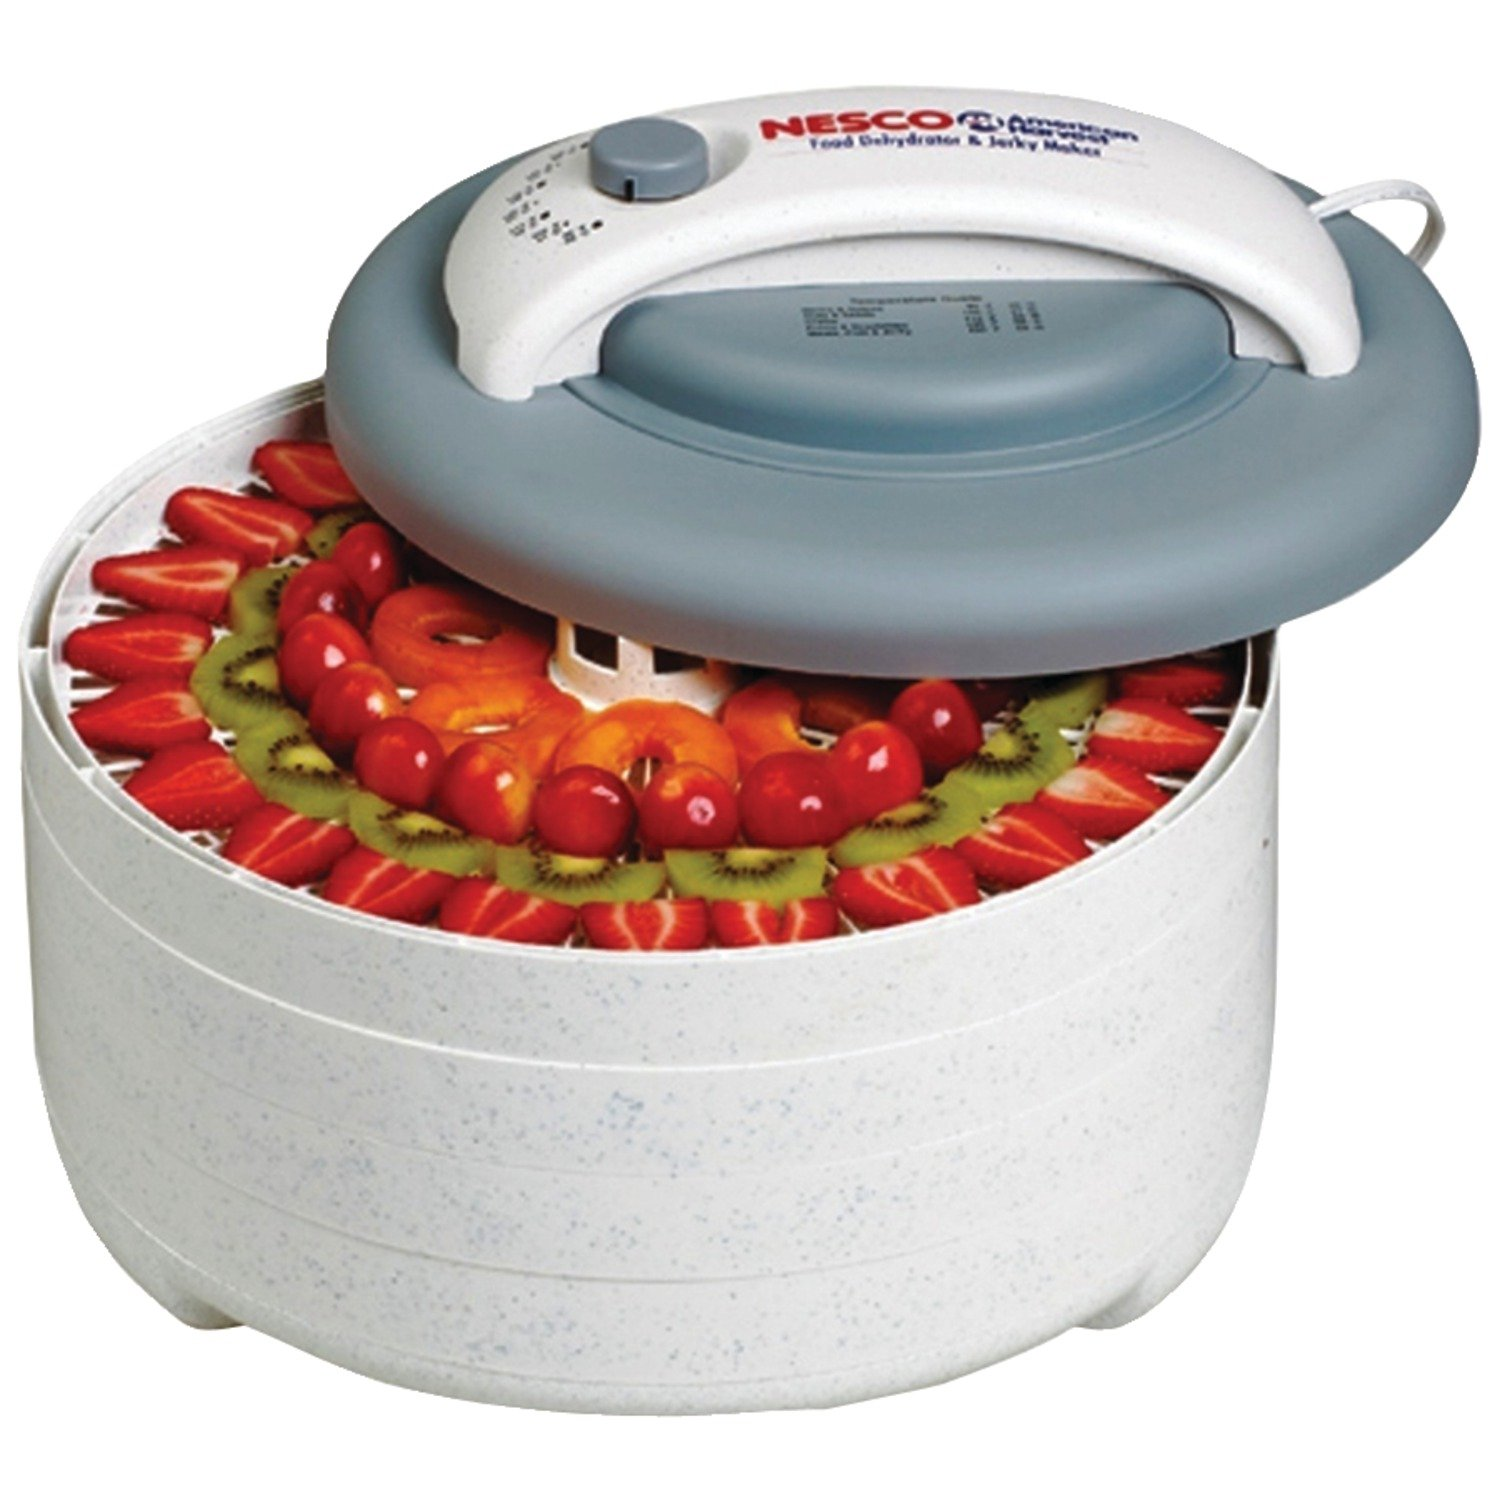 Nesco FD-61 Snackmaster Encore Four Tray Food Dehydrator